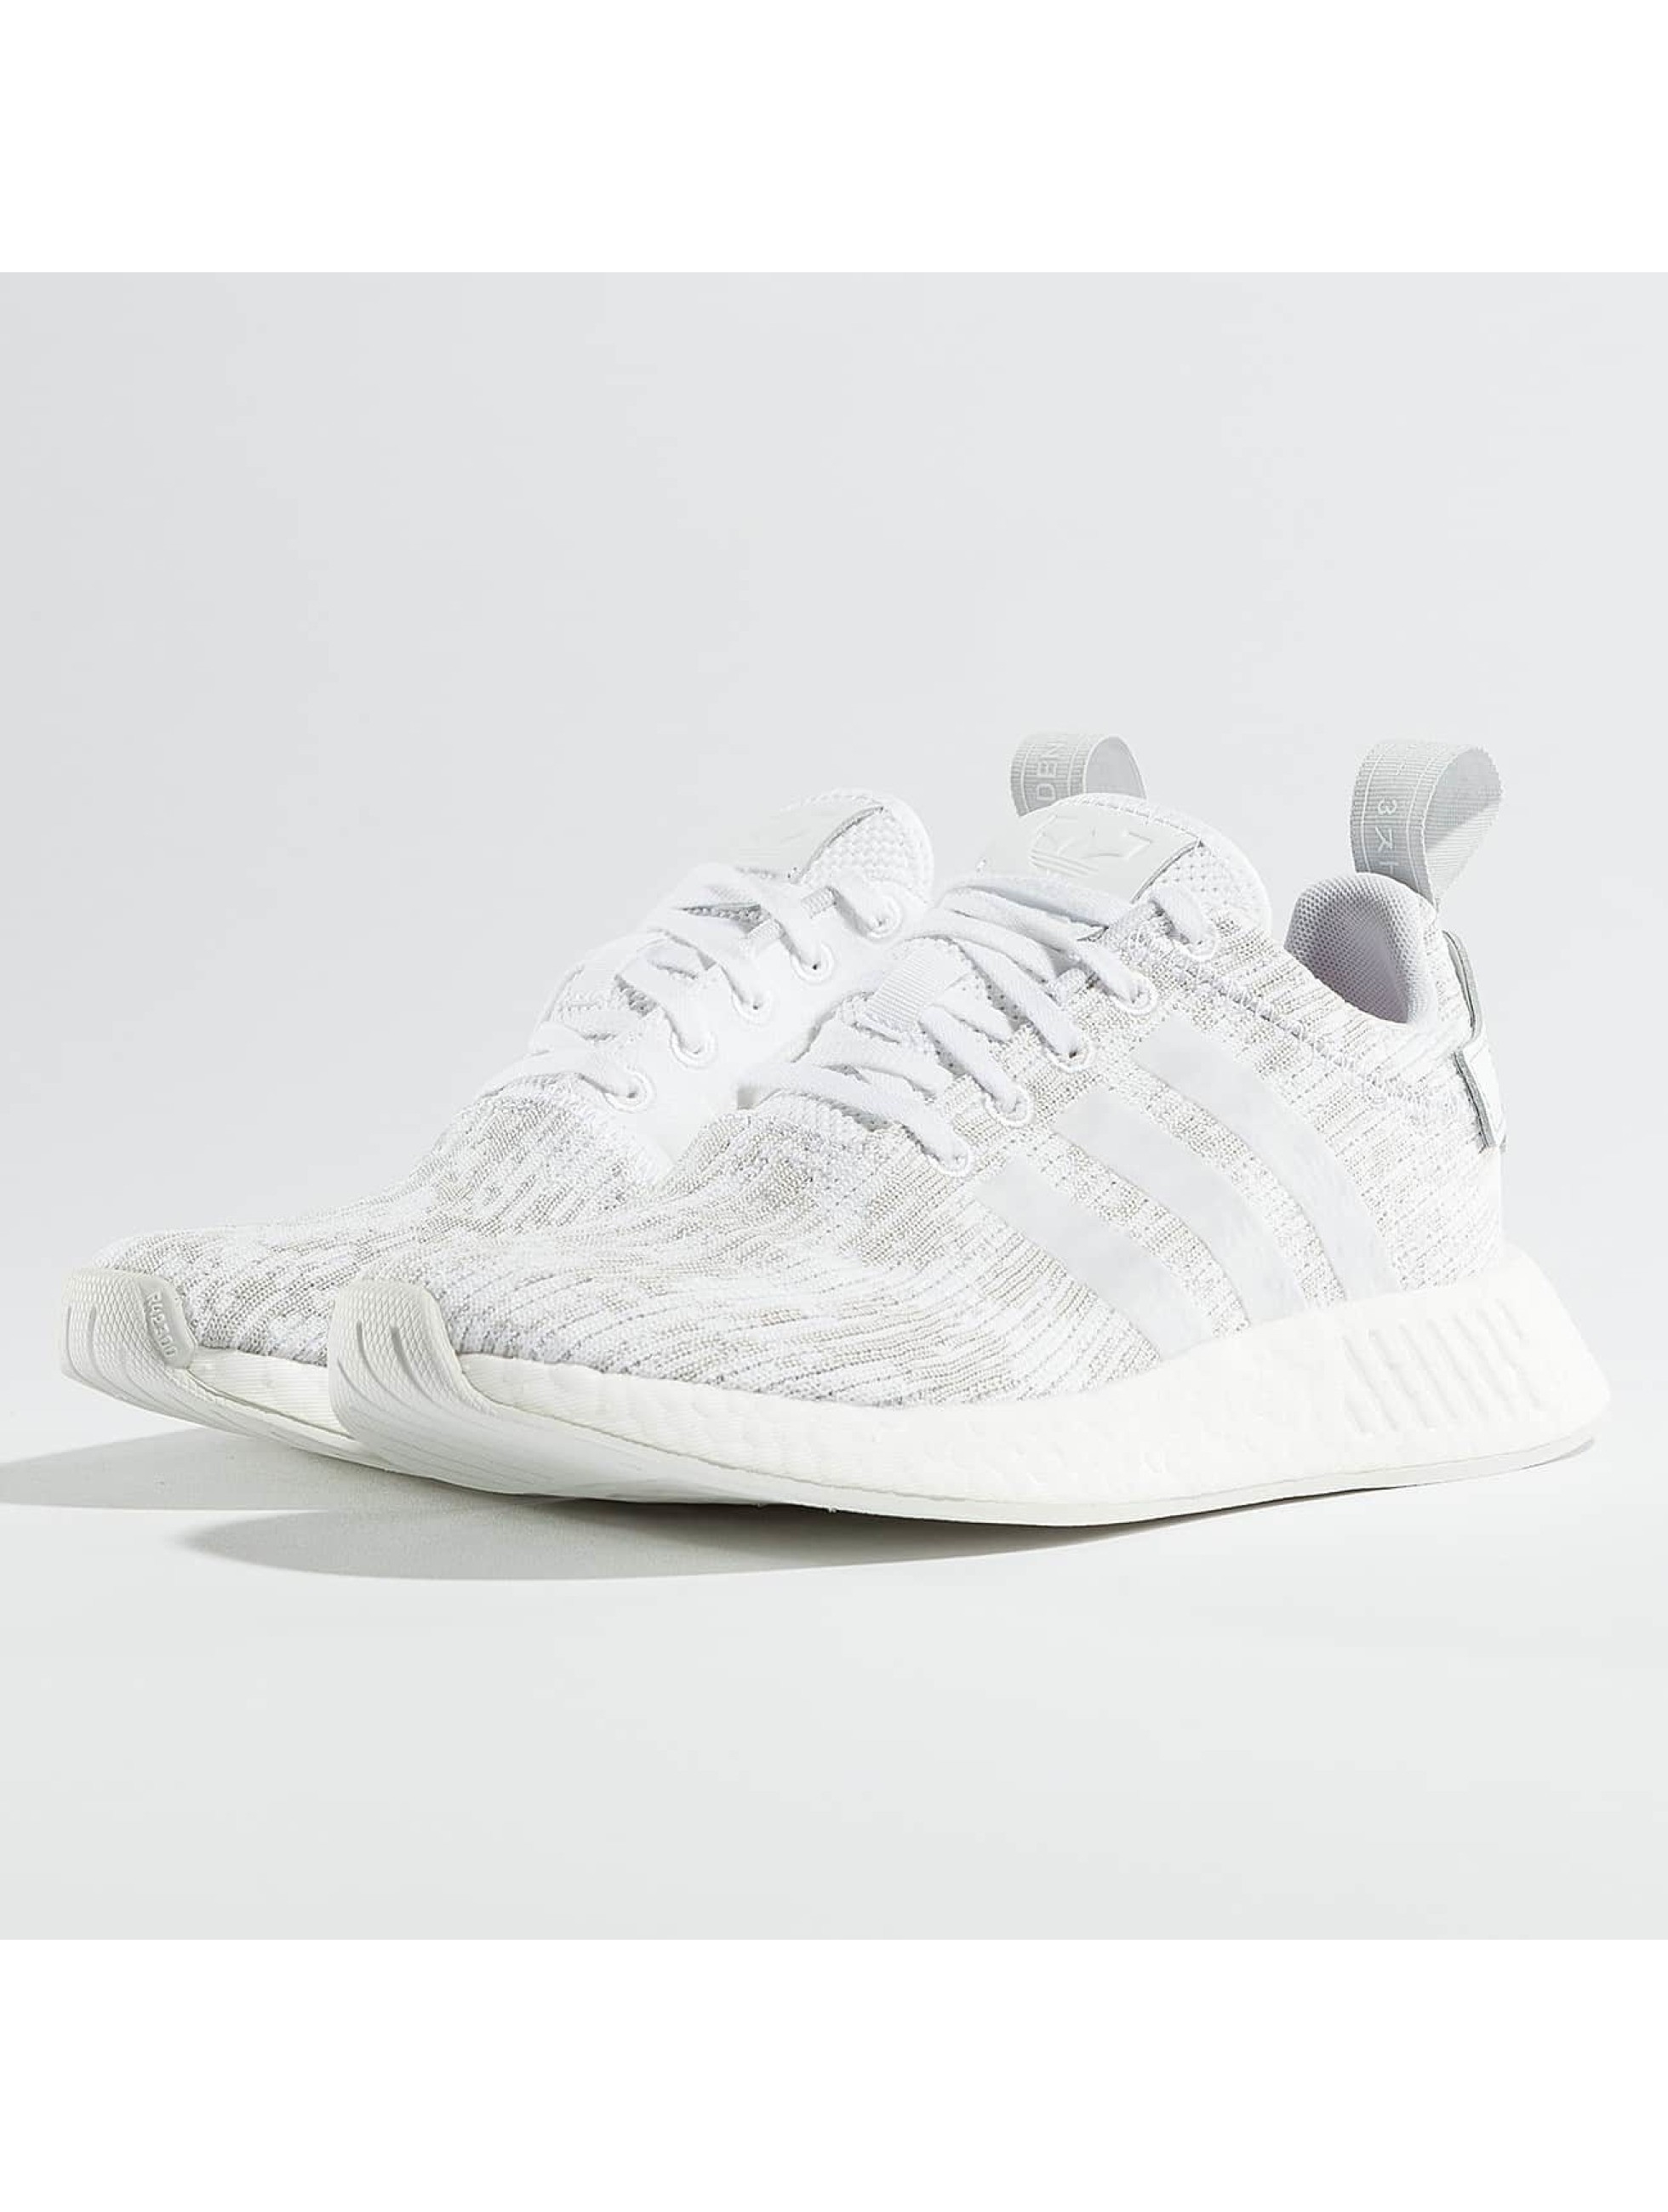 Adidas NMD_R2 W Sneakers Ftwr White